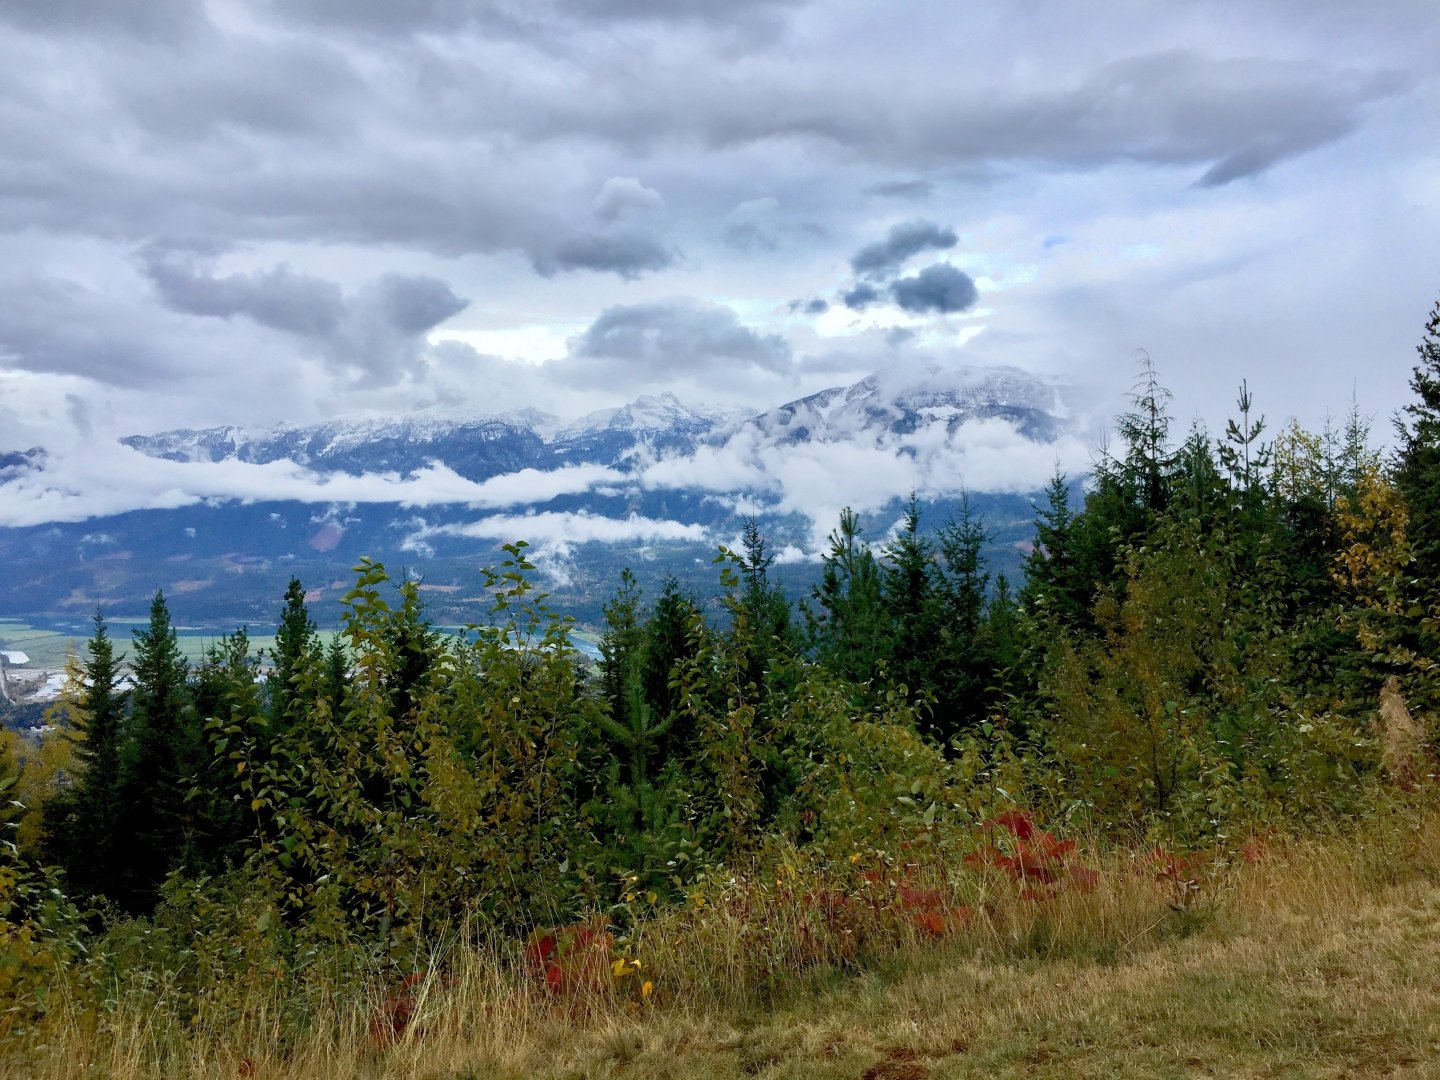 Autumnal colours on the drive up to Mount Revelstoke, overlooking the town of Revelstoke